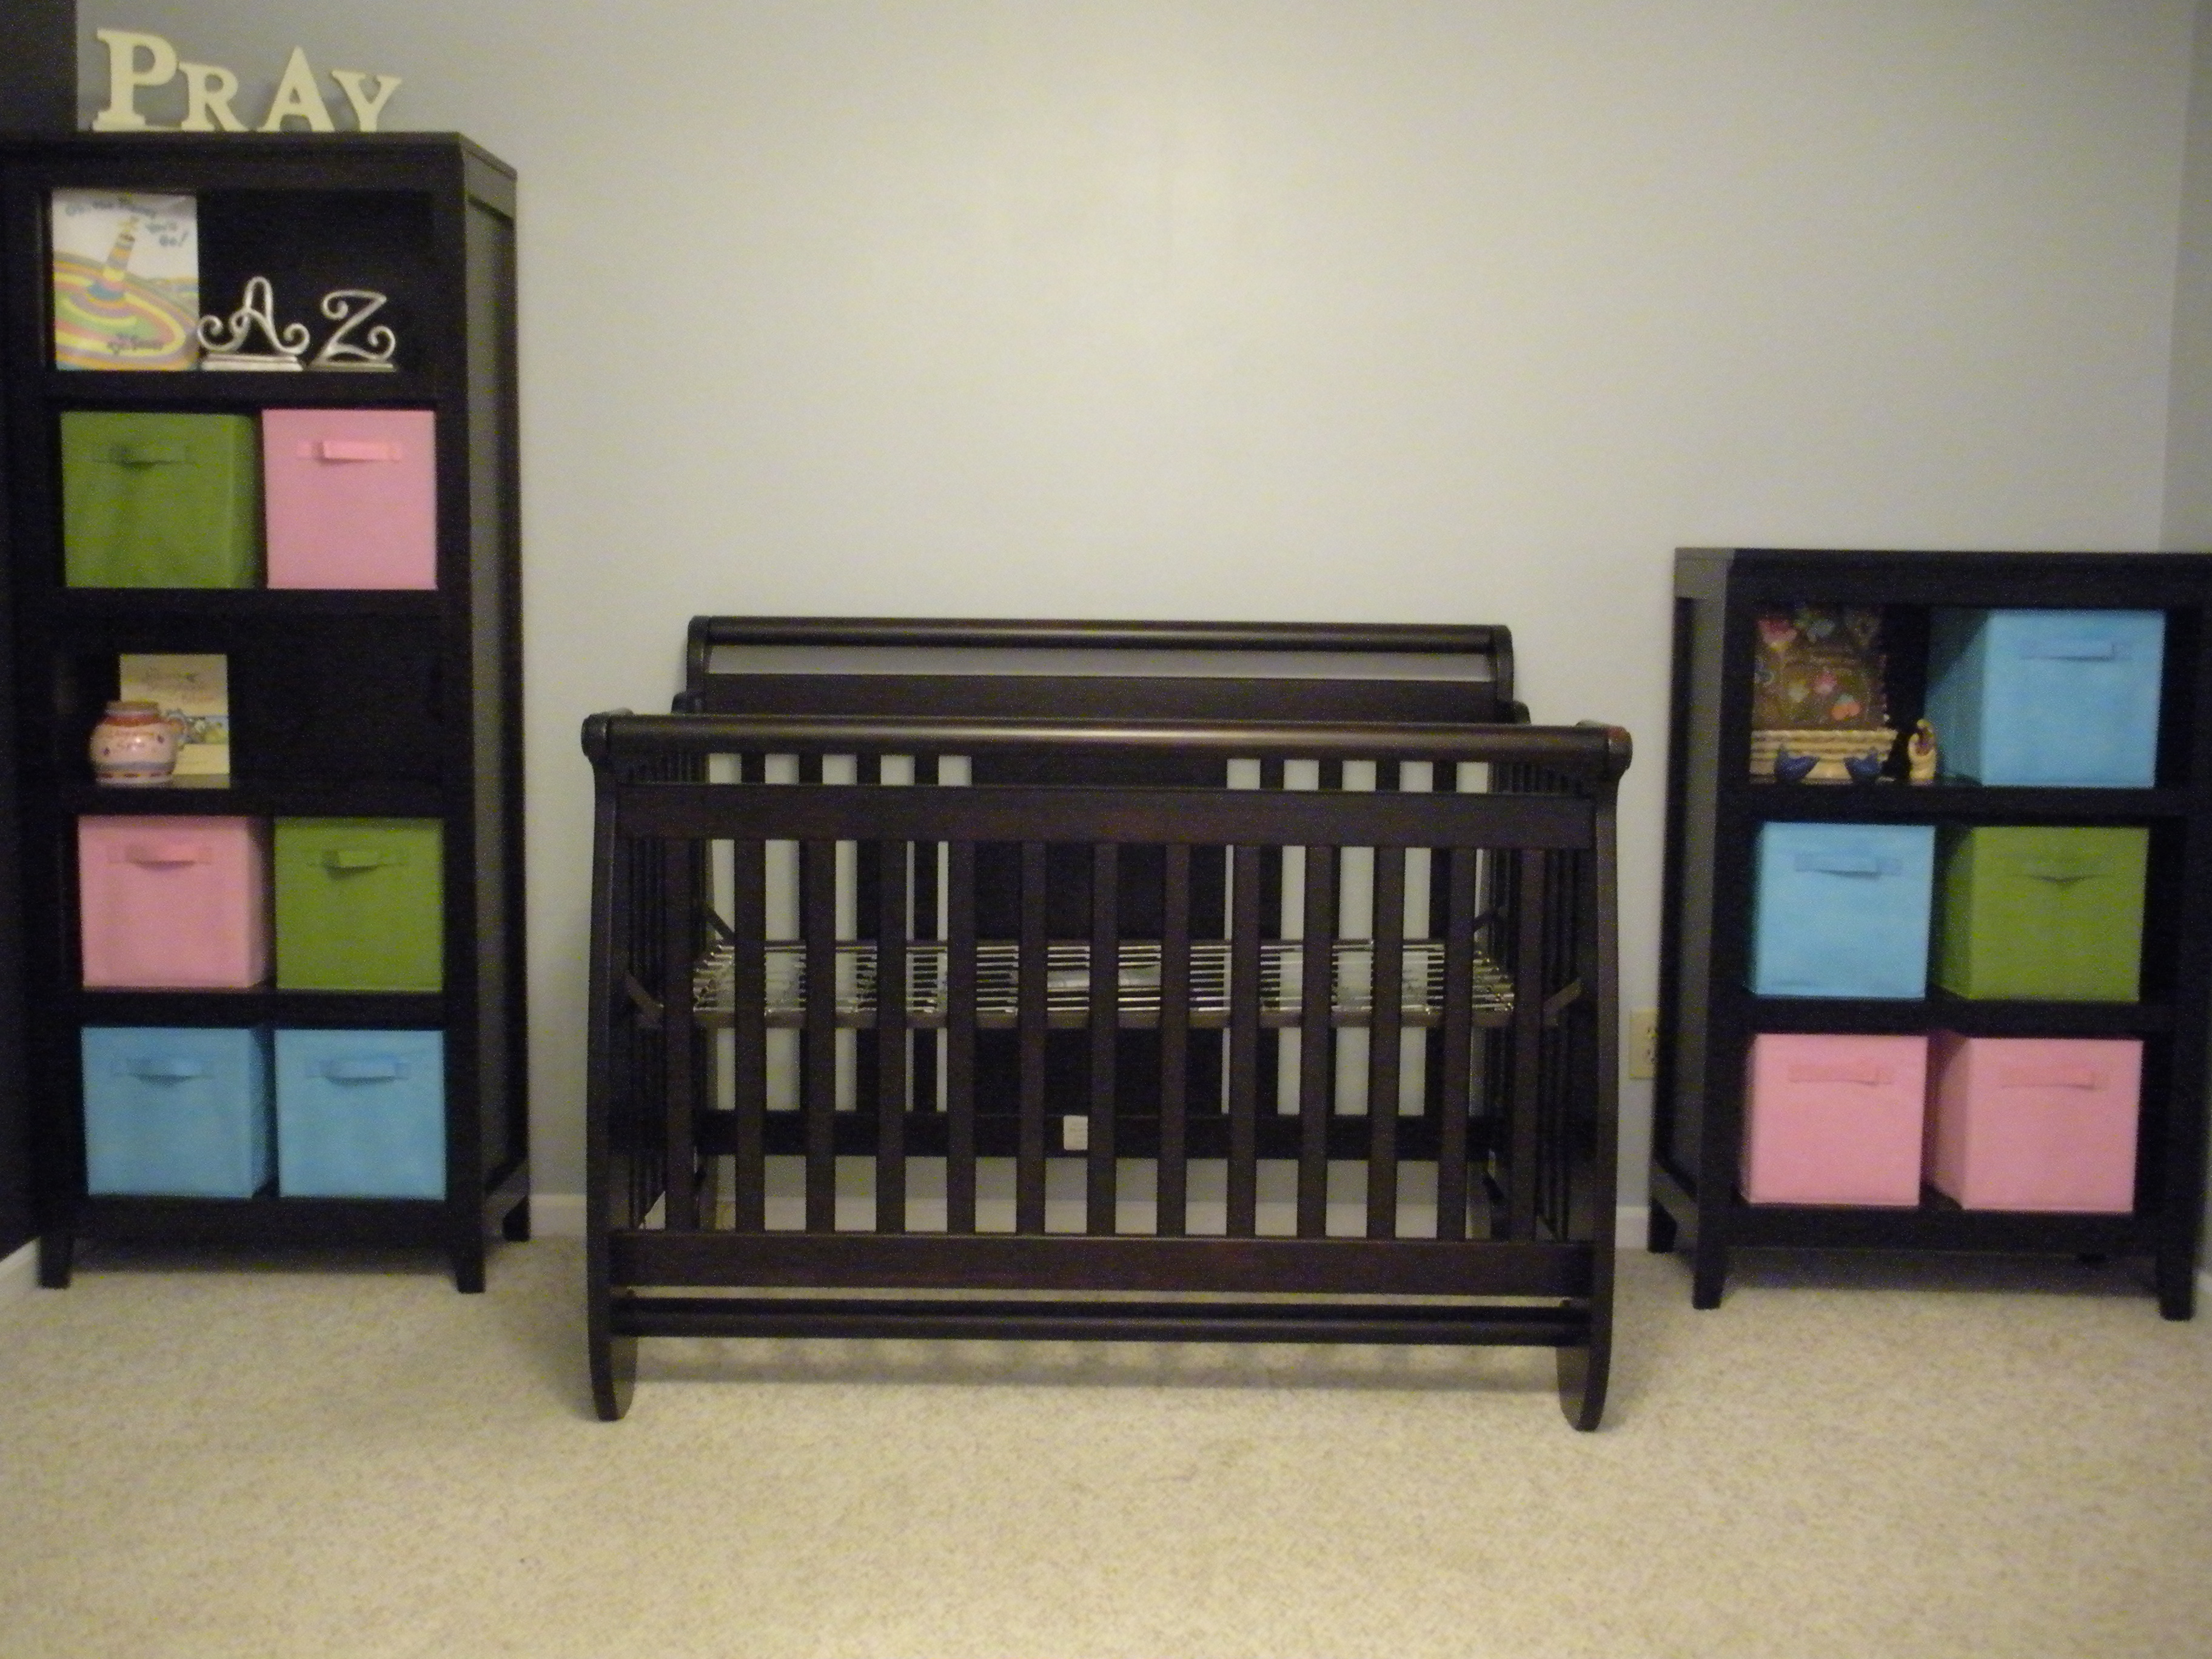 graco s drawer baby convertible cribs choose dream in drawers l larger storage solano with view crib